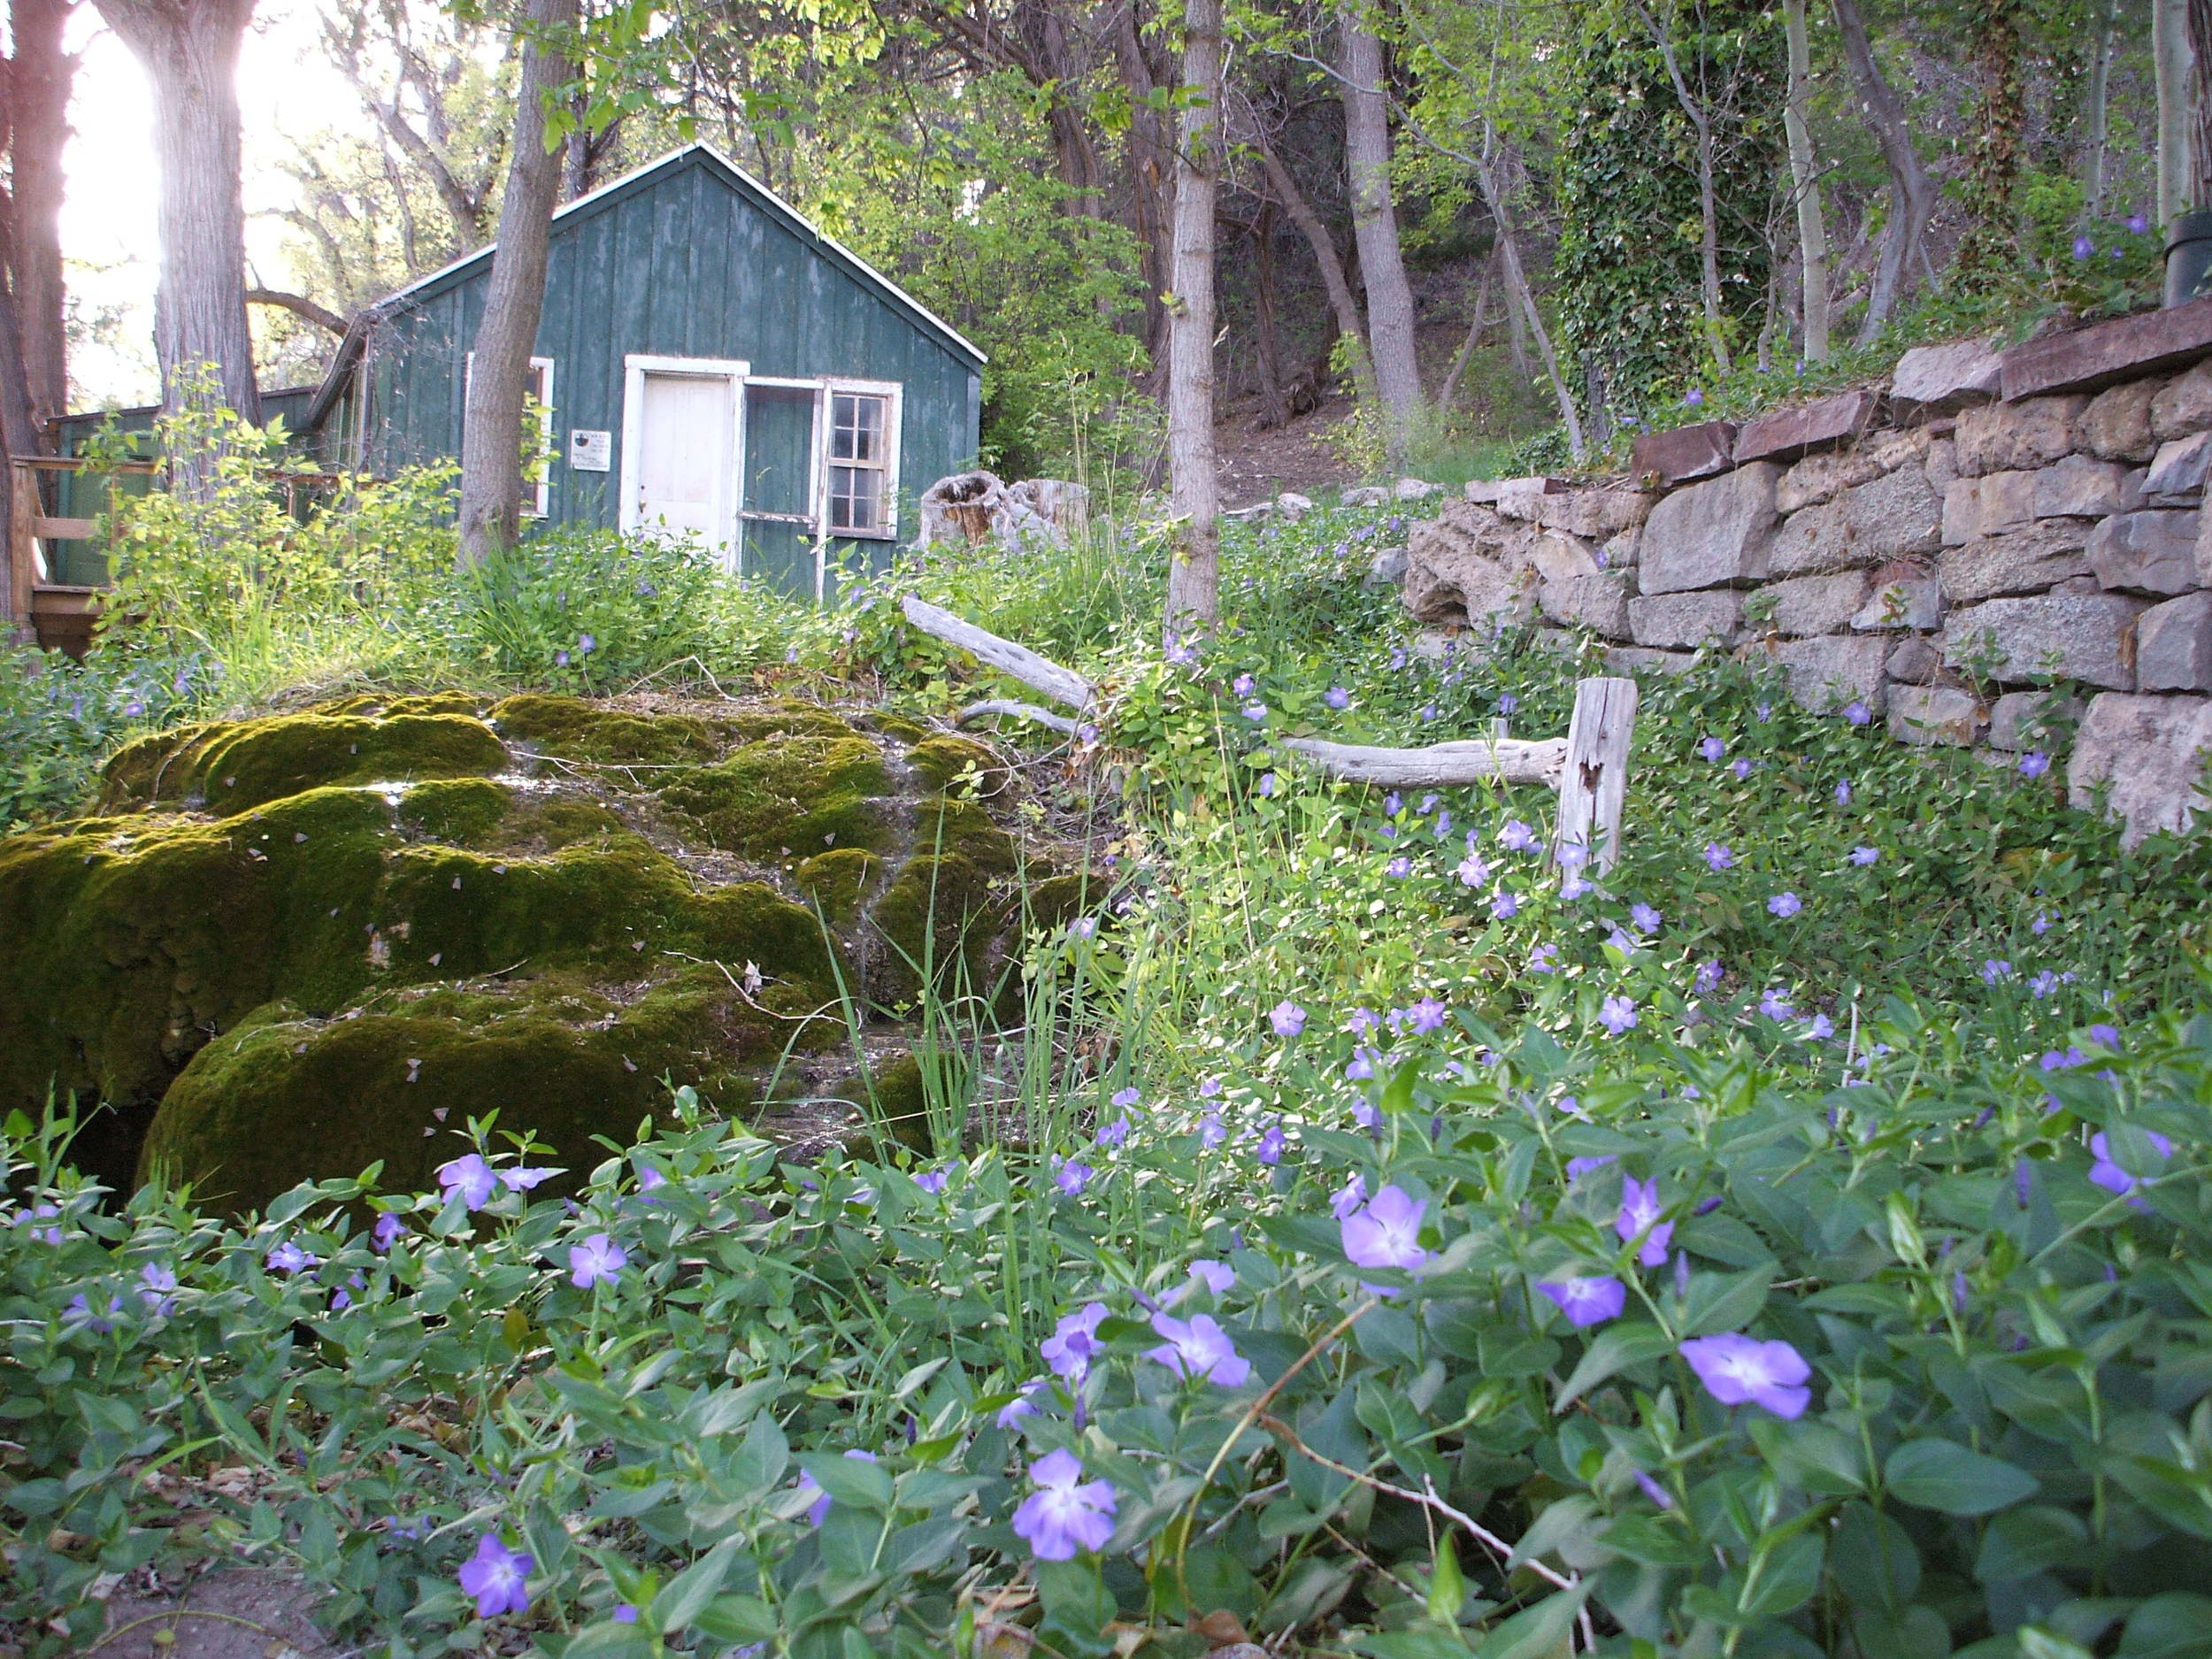 Spring-fed gardens at Carlito Springs